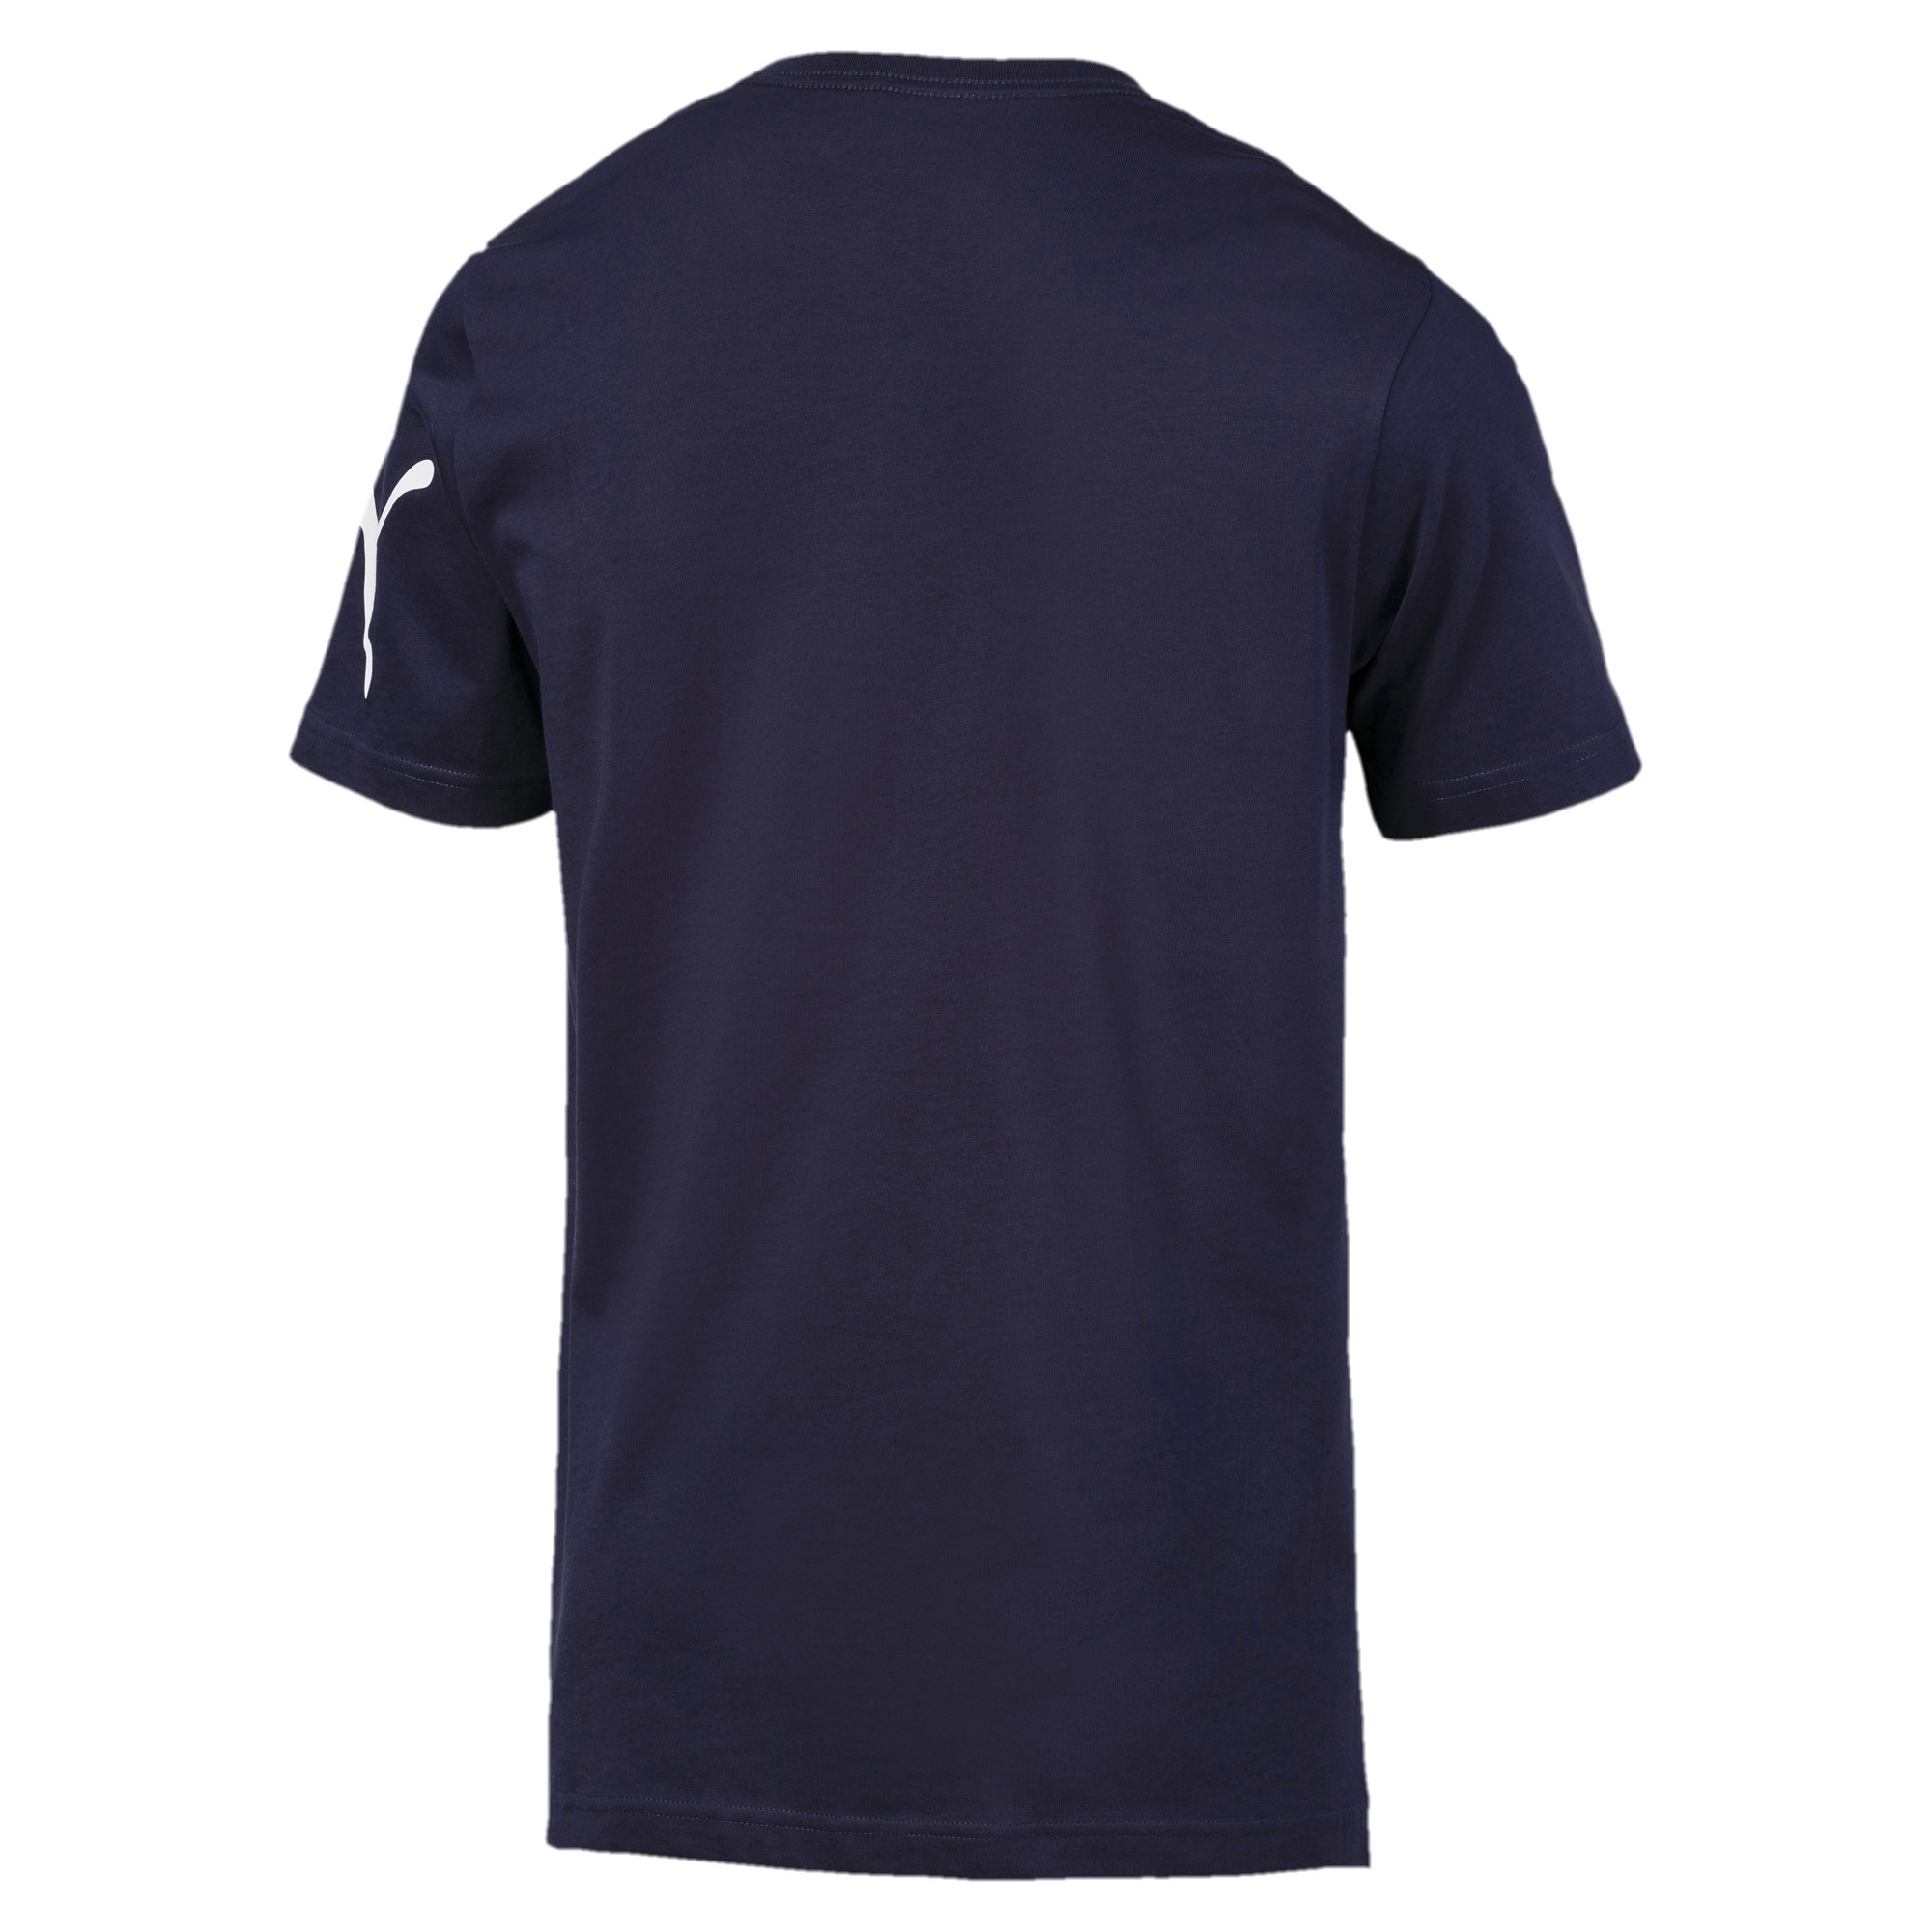 PUMA-Big-Logo-Men-039-s-Tee-Men-Tee-Basics thumbnail 19